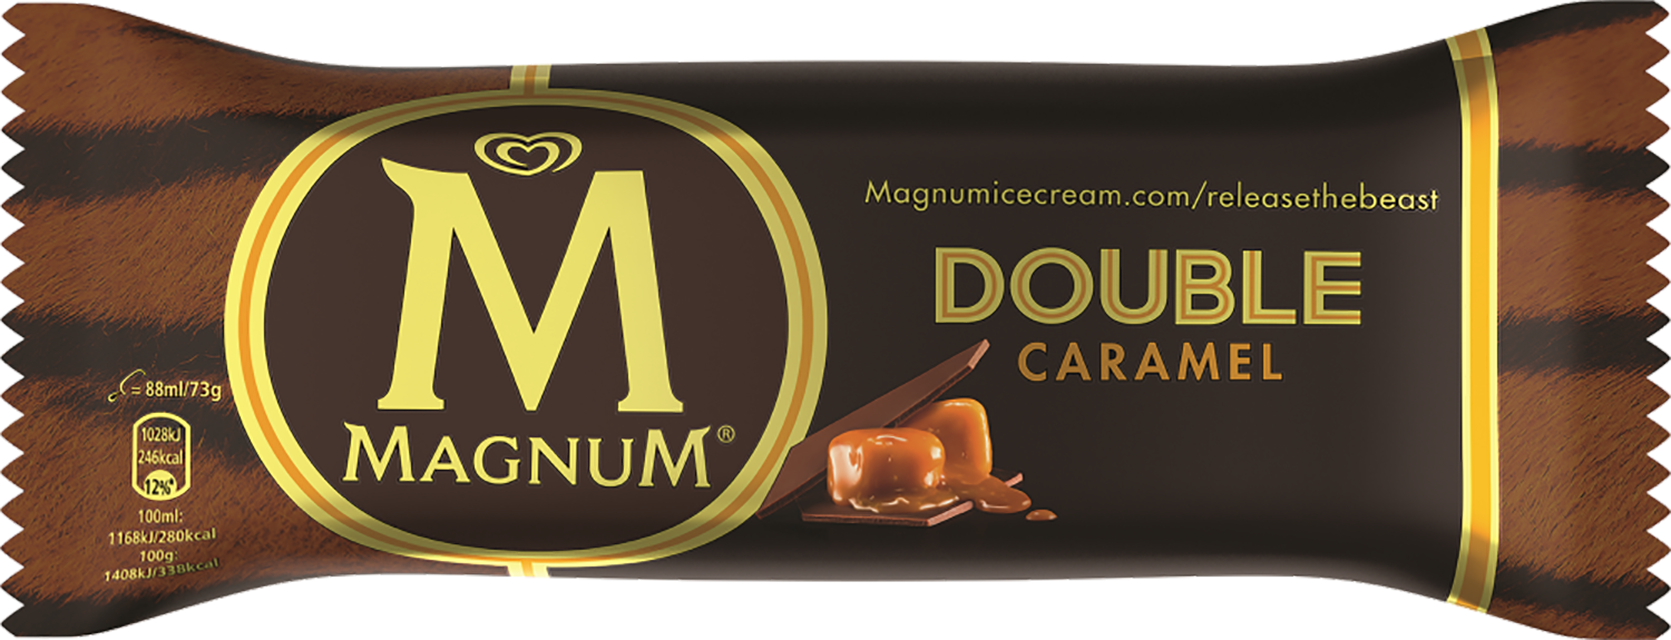 2806 - Magnum Double Caramel.png